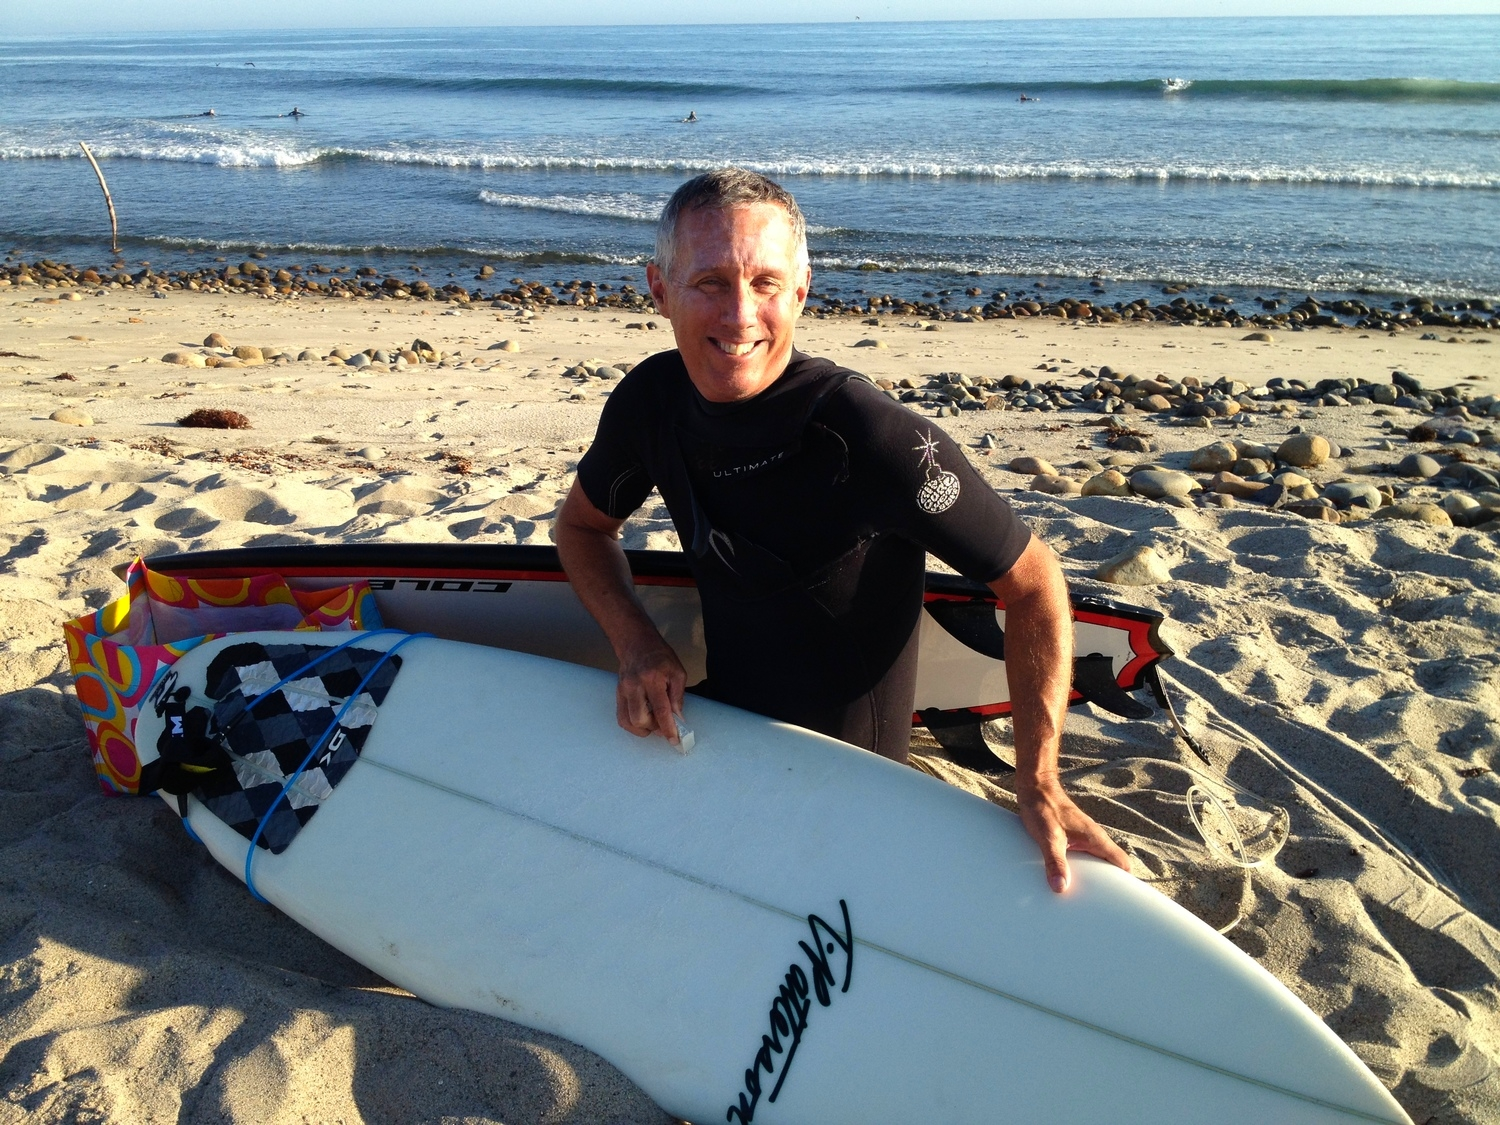 YFS Co-founder David Hall will make sure you get into plenty of  fun waves, no matter your experience